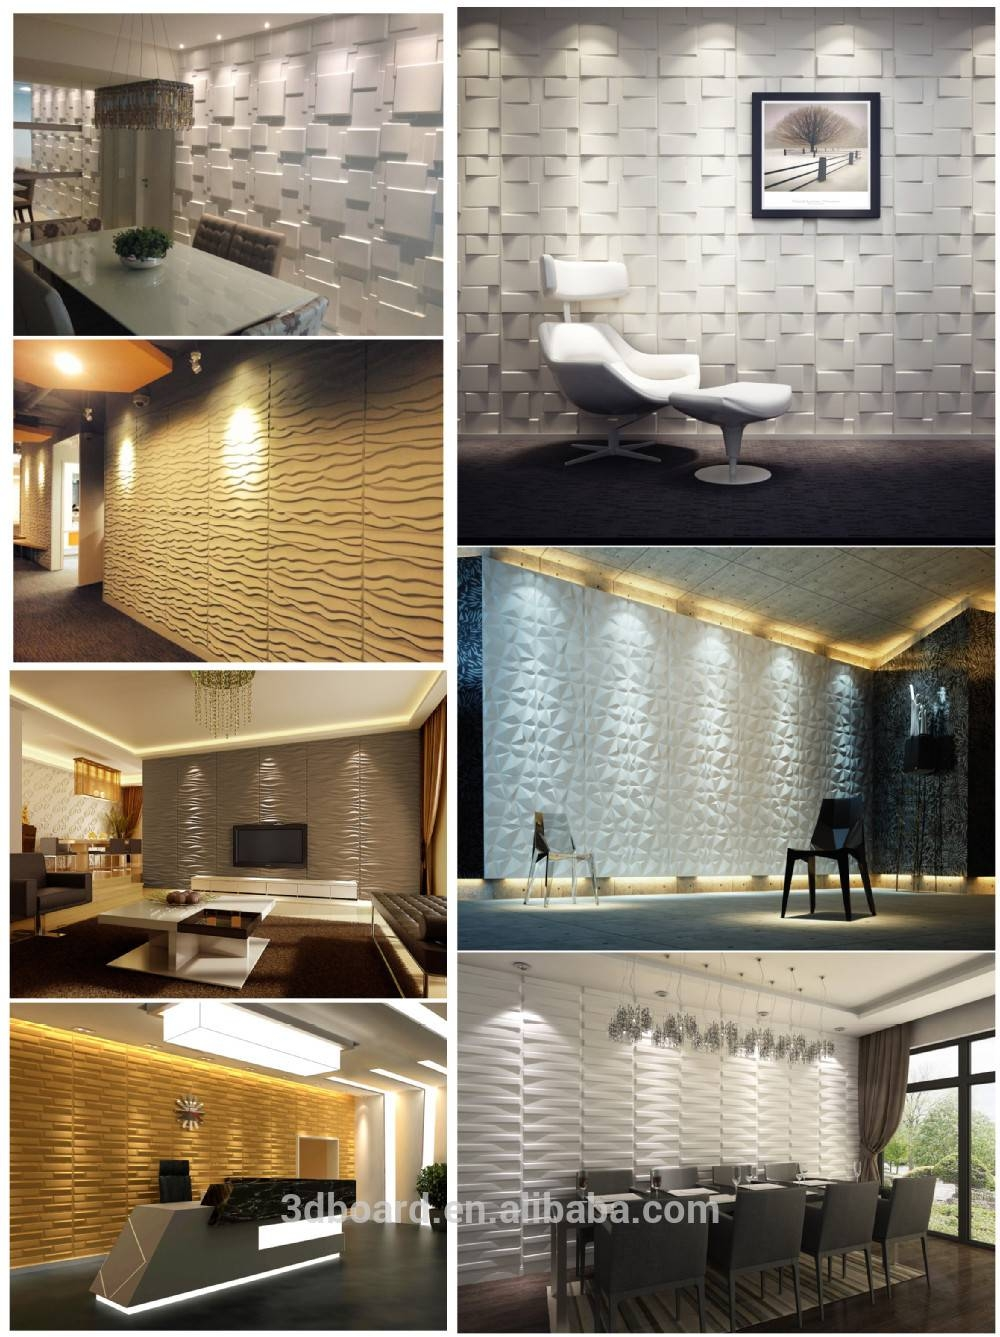 Modern Wall Art Decor Interior 3d Effect Wall Panels For Home Within Newest 3d Wall Art And Interiors (View 8 of 20)